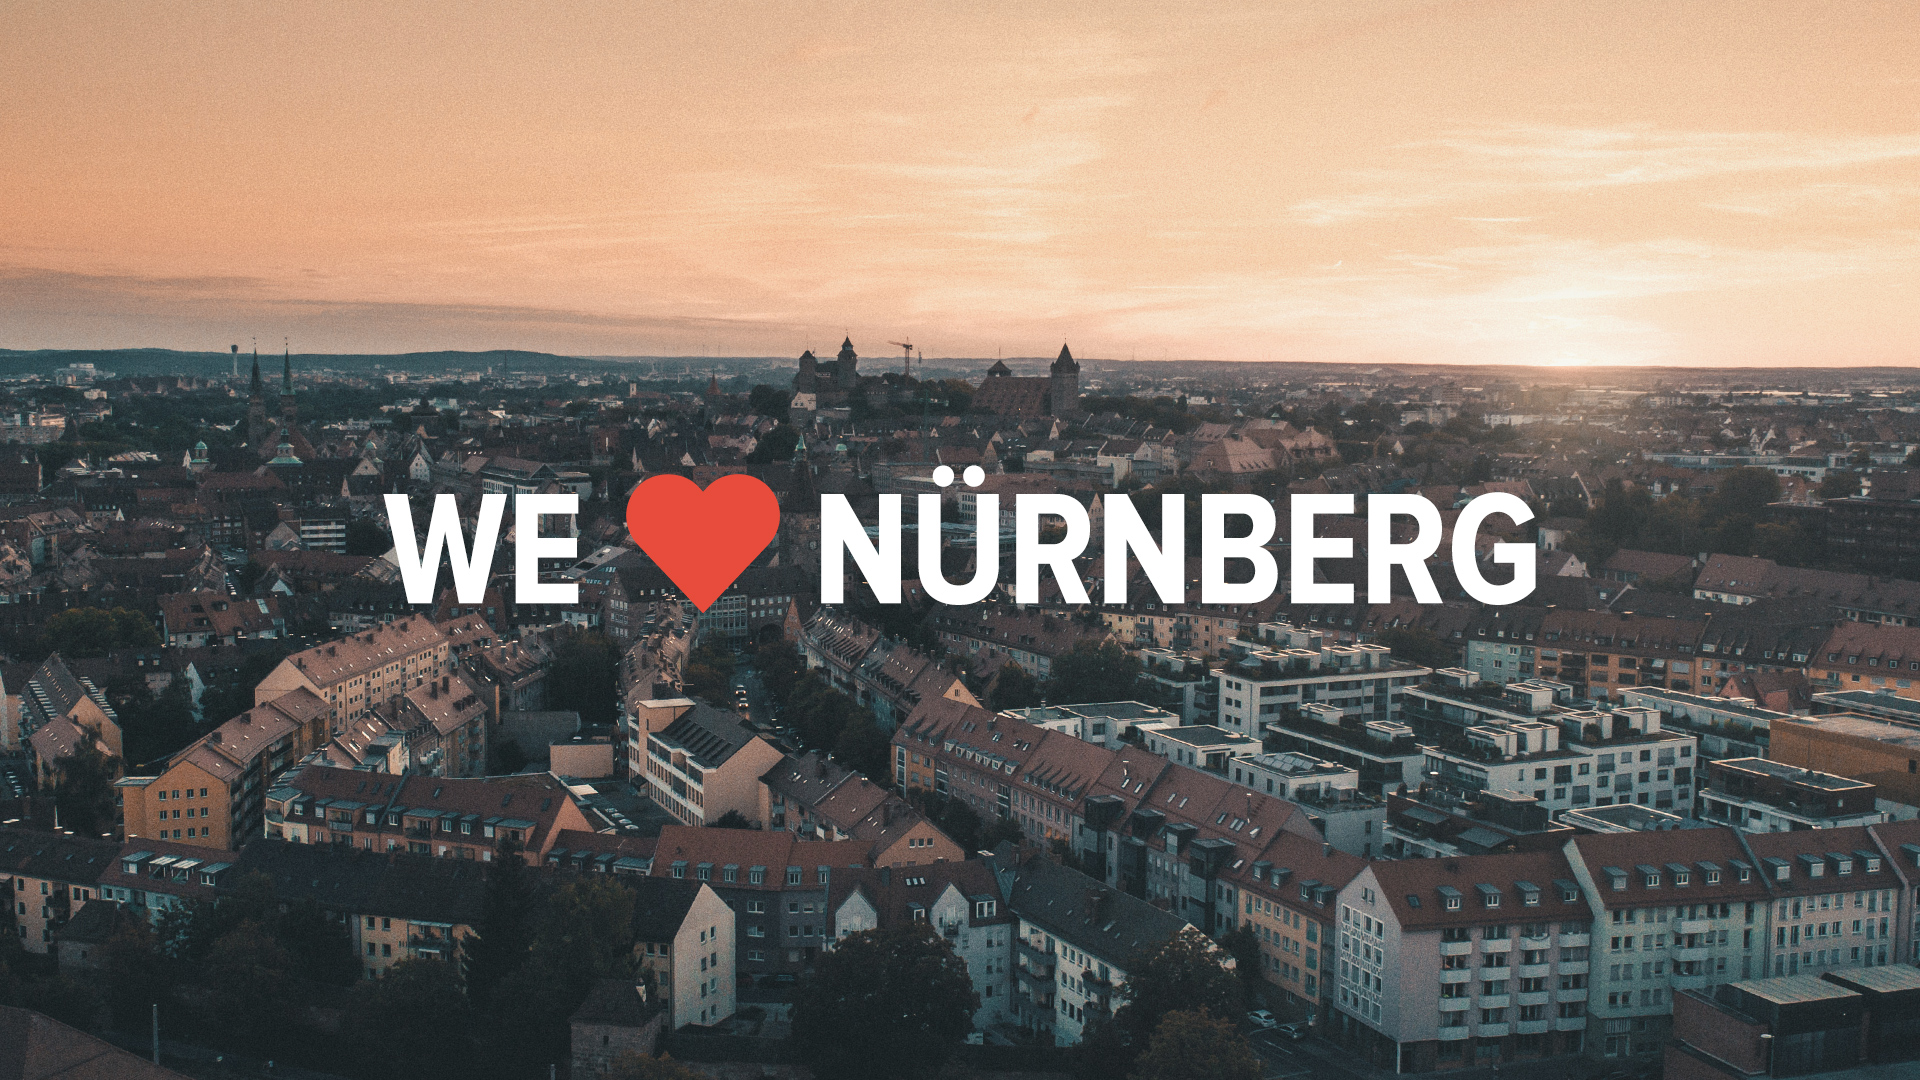 We ❤️ Nürnberg - Short film for the City of Nuremberg.